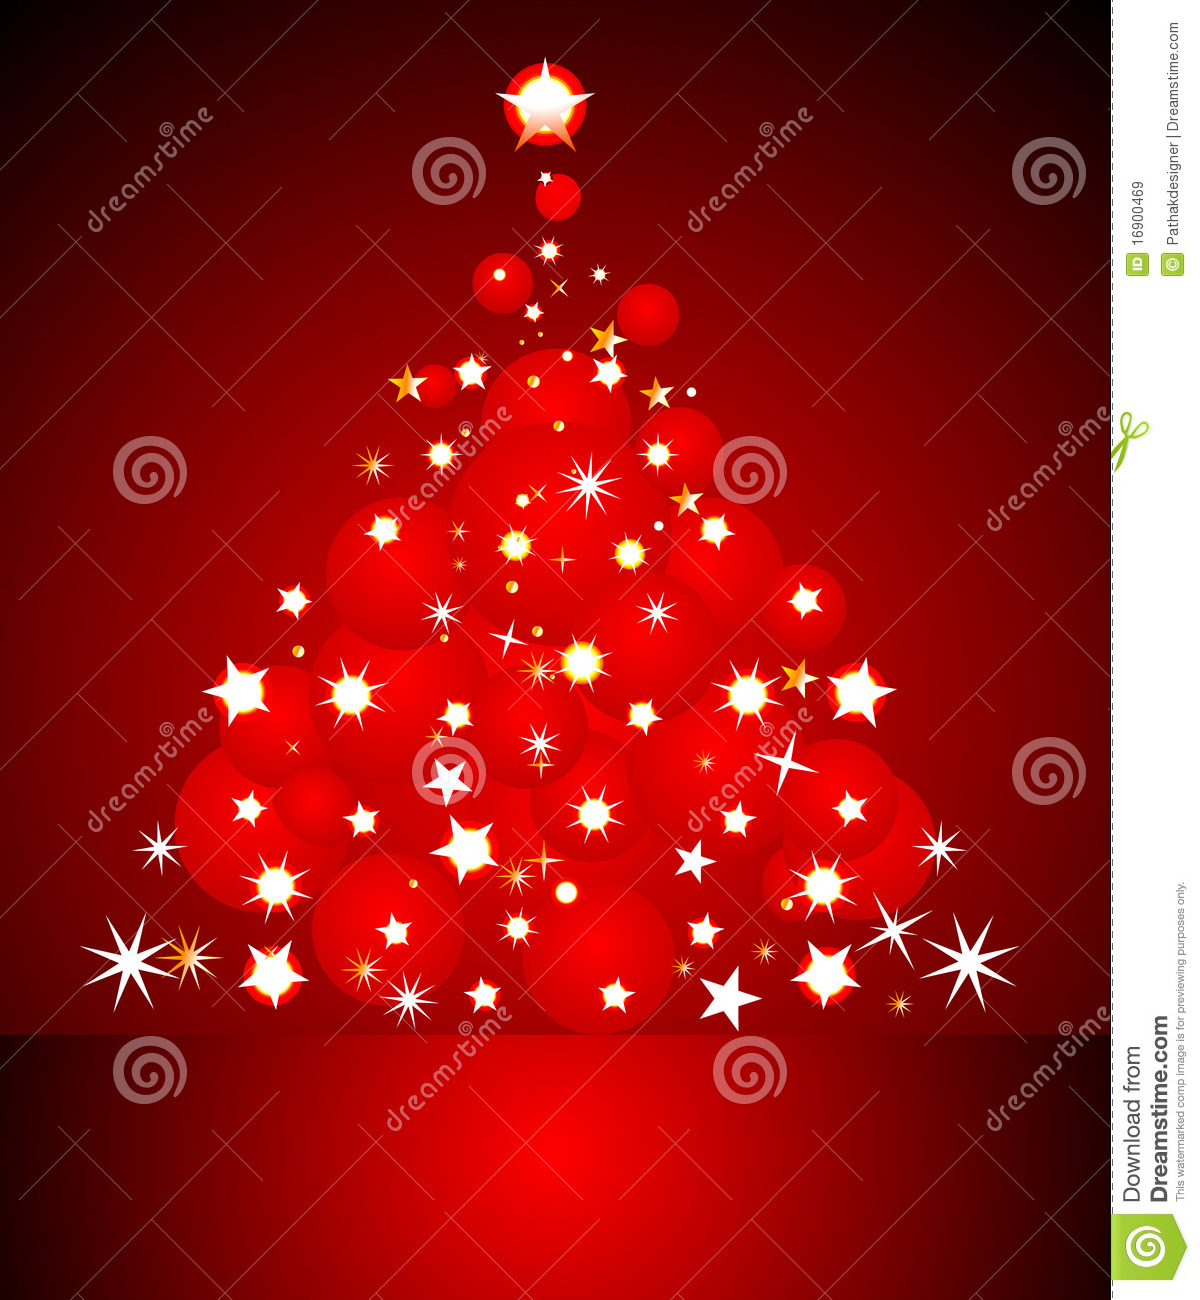 Abstract Red Christmas Card Stock Vector Image 16900469